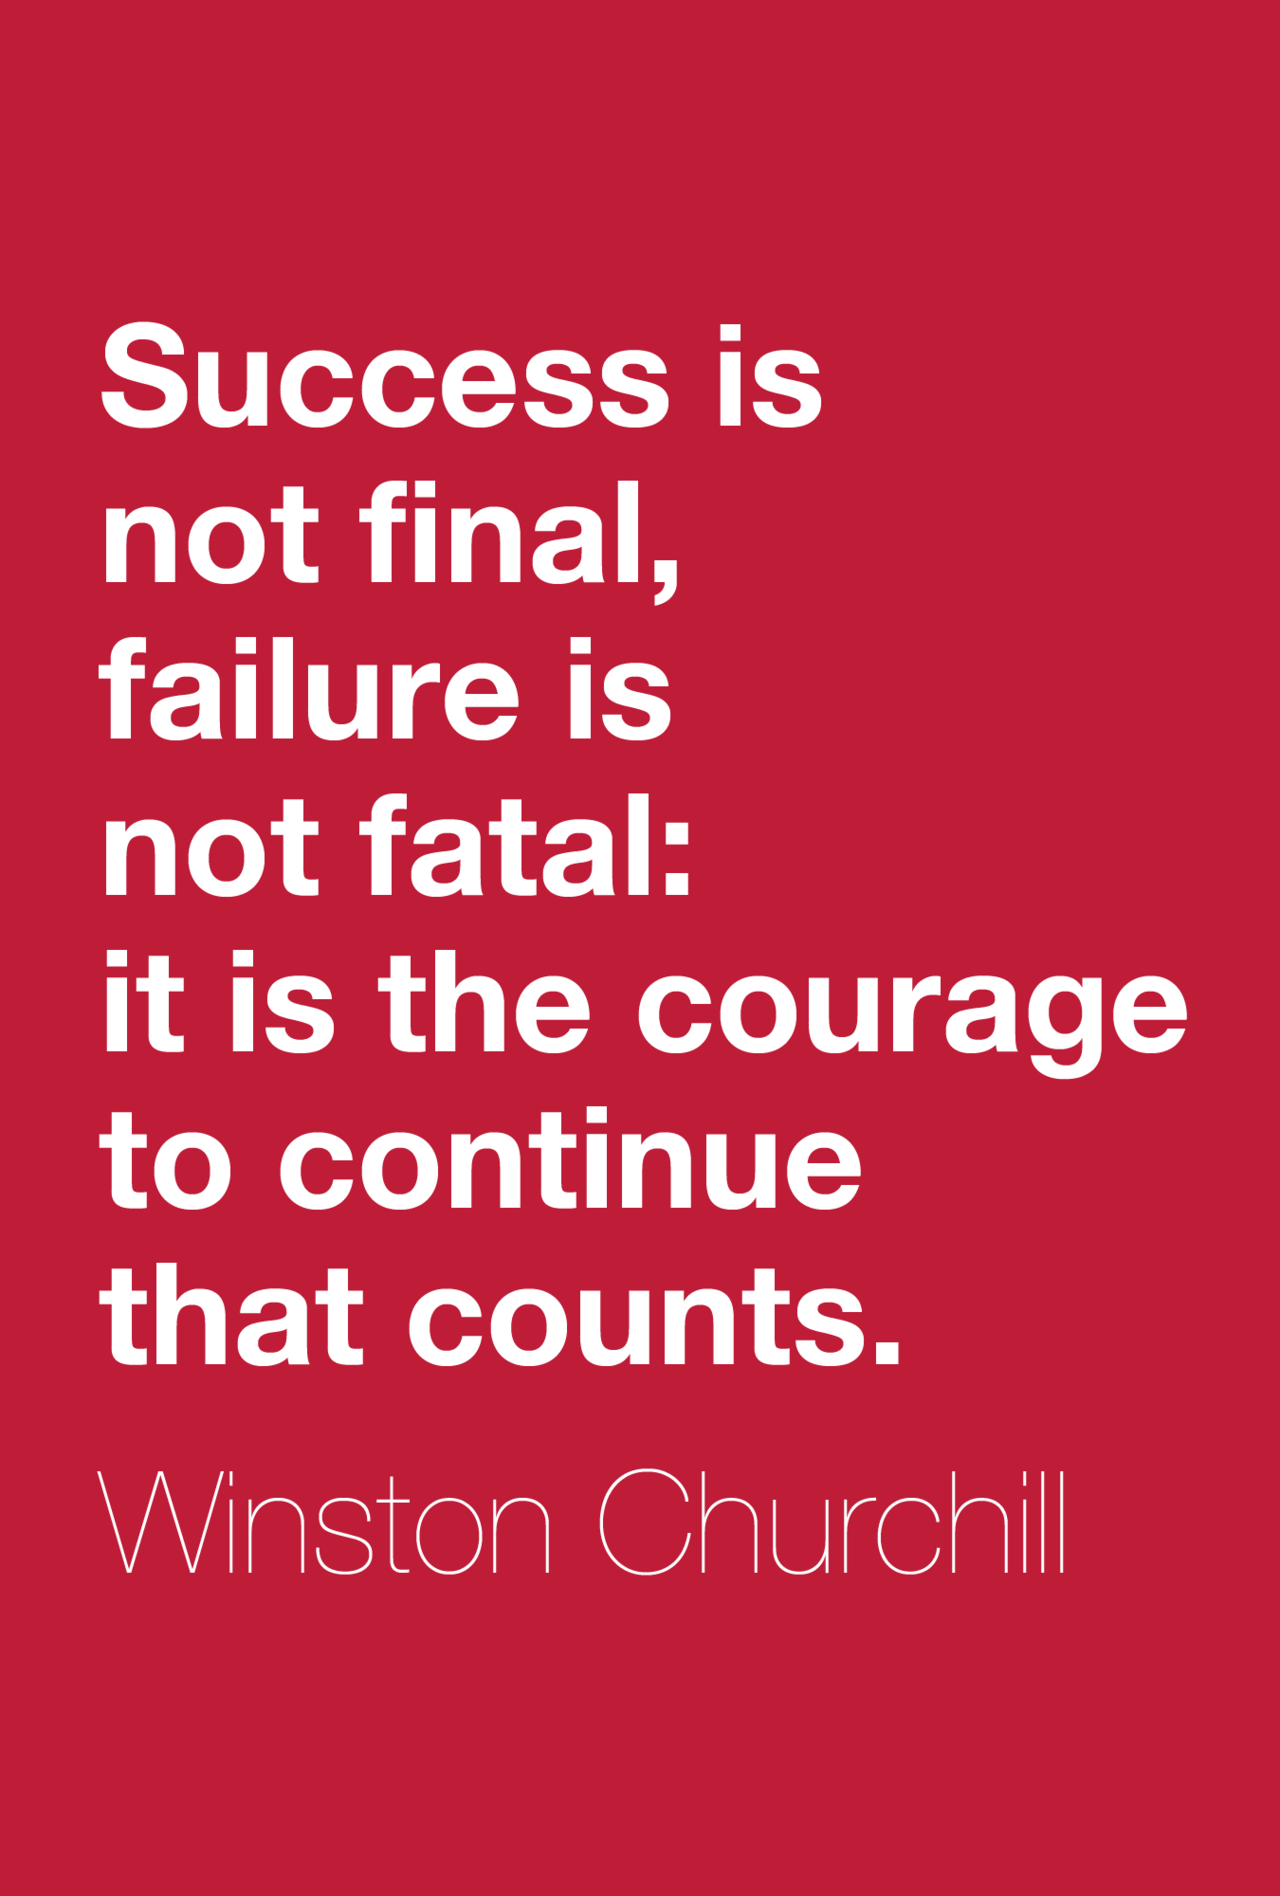 Finals Quotes Success Is Not Final Failure Is Not Fatal It Is The Courage To